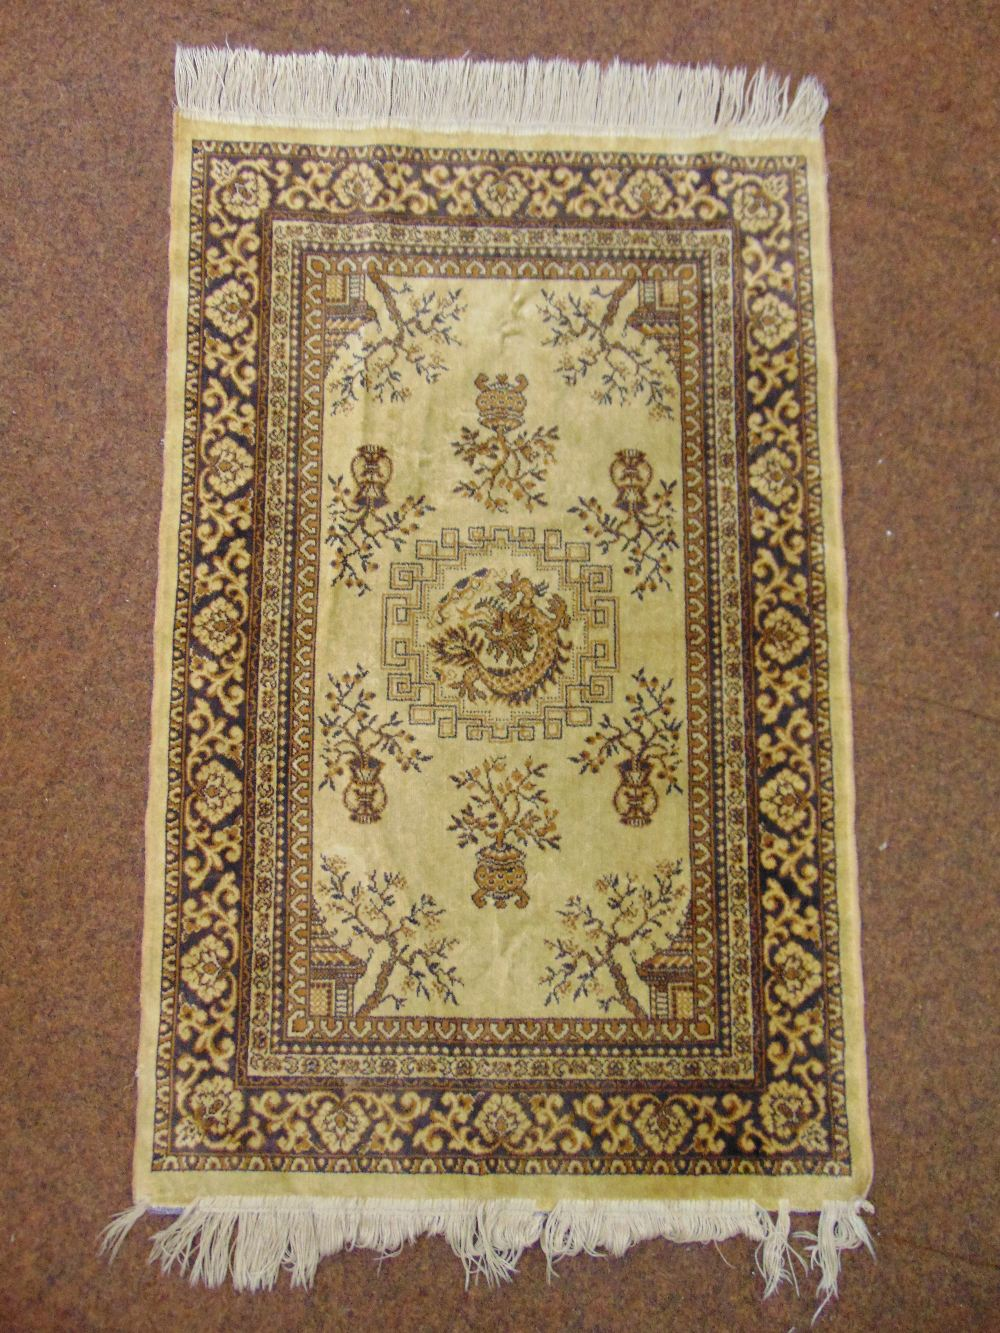 Lot 25 - A silk prayer rug with geometric borders and organic repeating motifs to the centre, 108 x 68.5cm